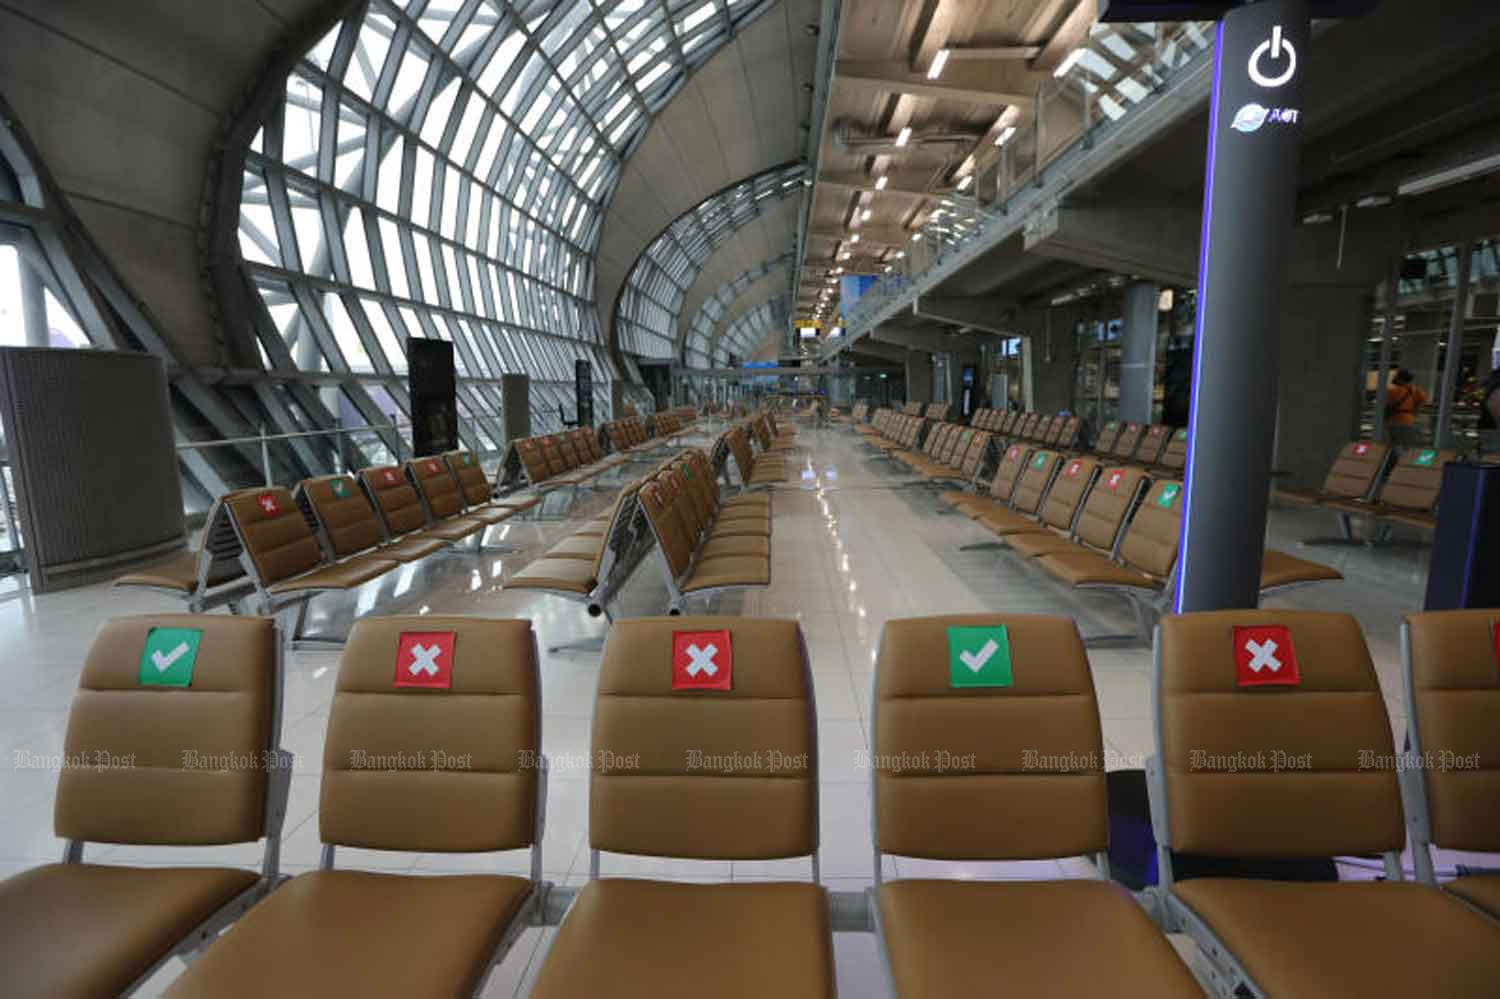 Empty seats at Suvarnabhumi airport in Samut Prakan province last month. (Photo by Wichan Charoenkiatpakul)